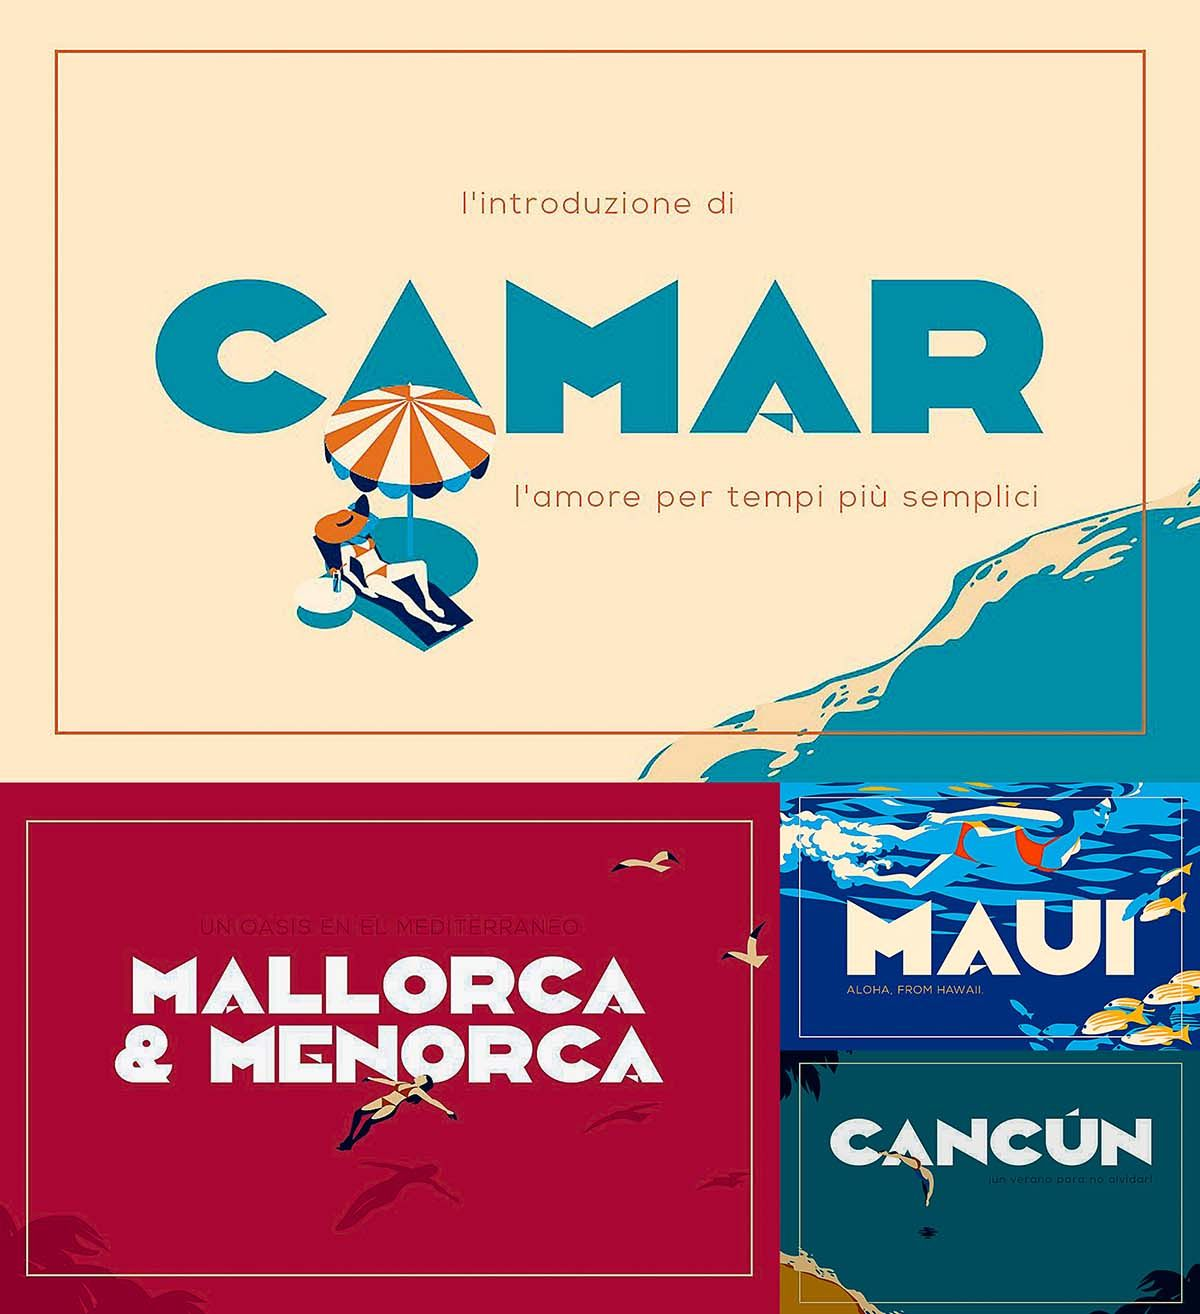 Camar Is A Bold, Clean And Simple All Caps Deco Style Inspired Display Font  That Is Perfect For Short Strong Words, The File Includes . Free For  Download.